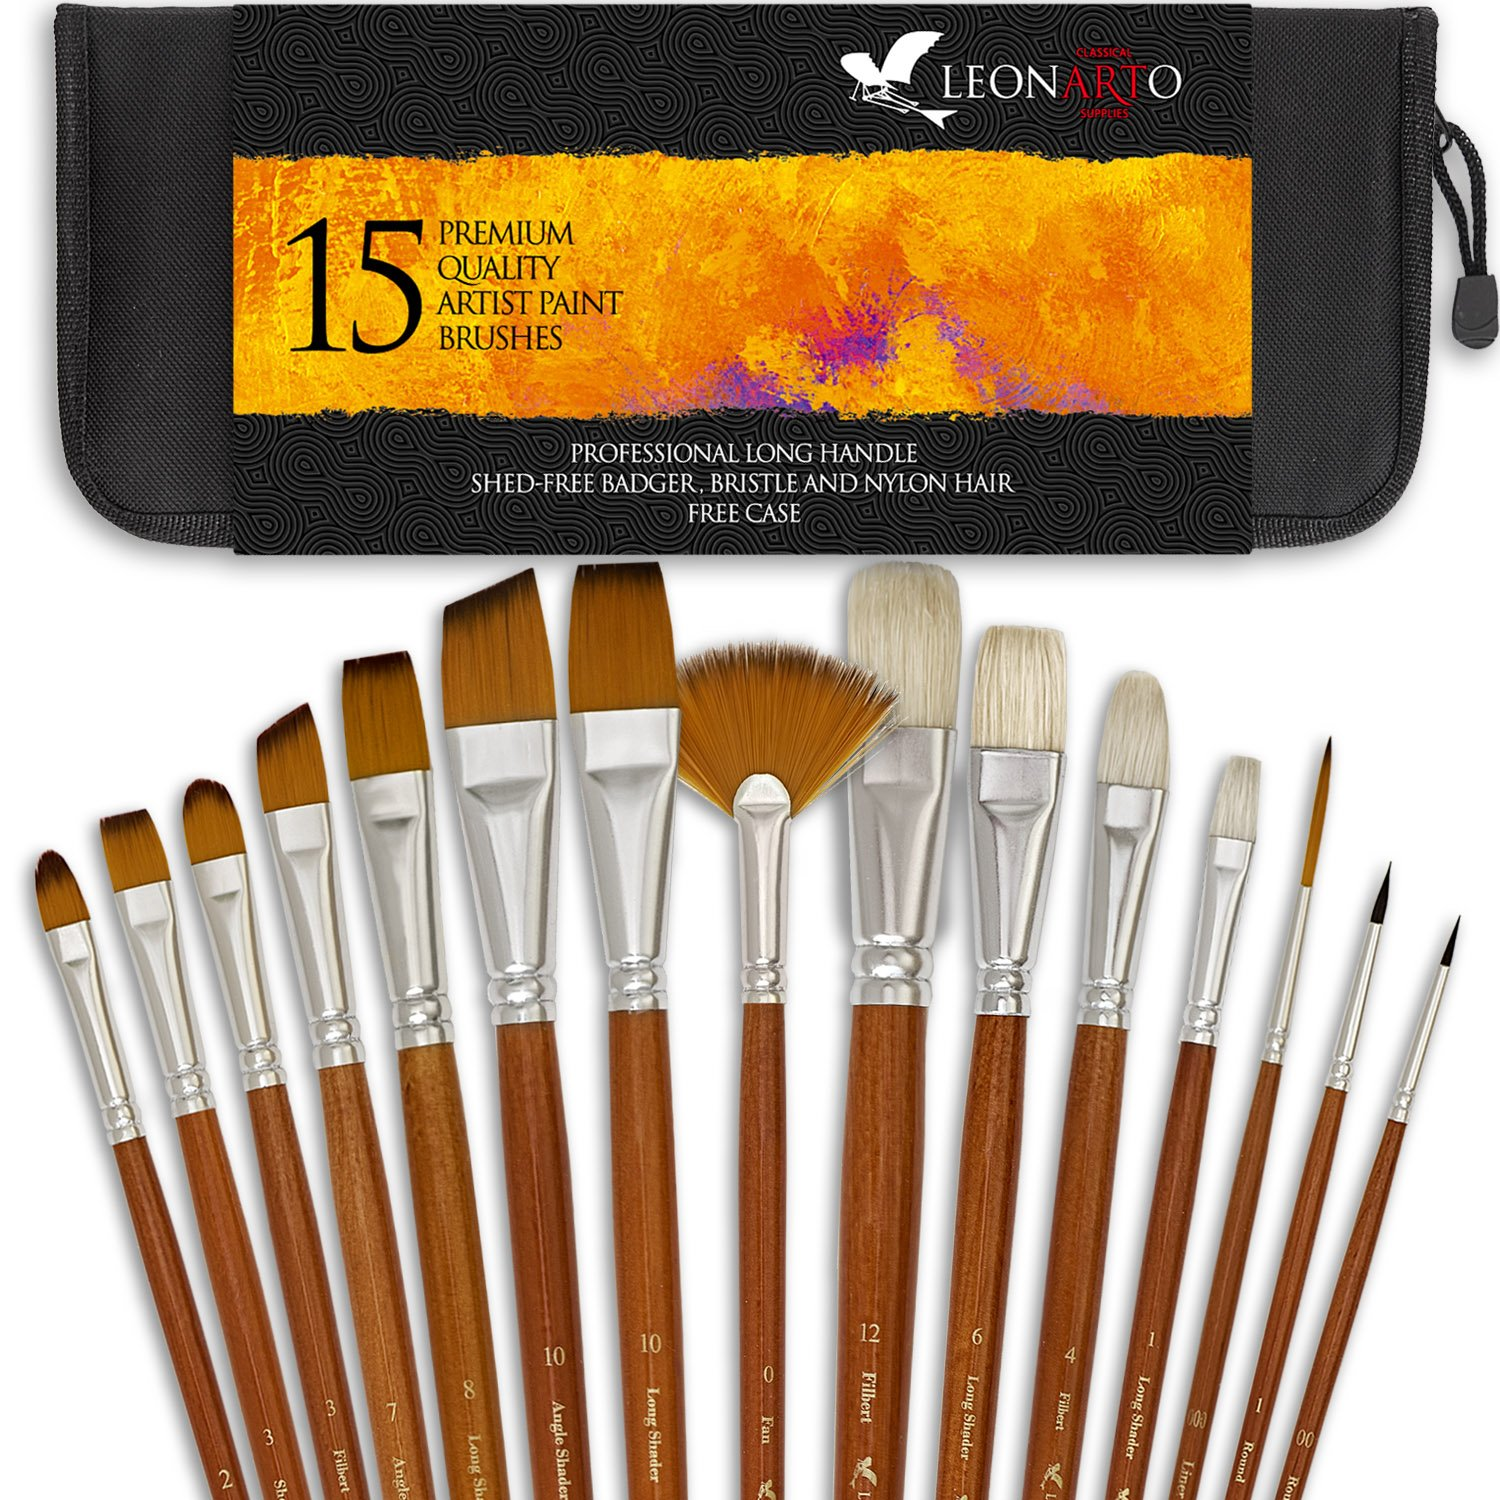 Paint brushes set - Acrylic Oil Watercolor Gouache painting Brushes - Badger hog bristle synthetic brushes - Artist Canvas Art Paint Brush Kit with a Free Pop Up Case - Long Handles - 15 Pieces